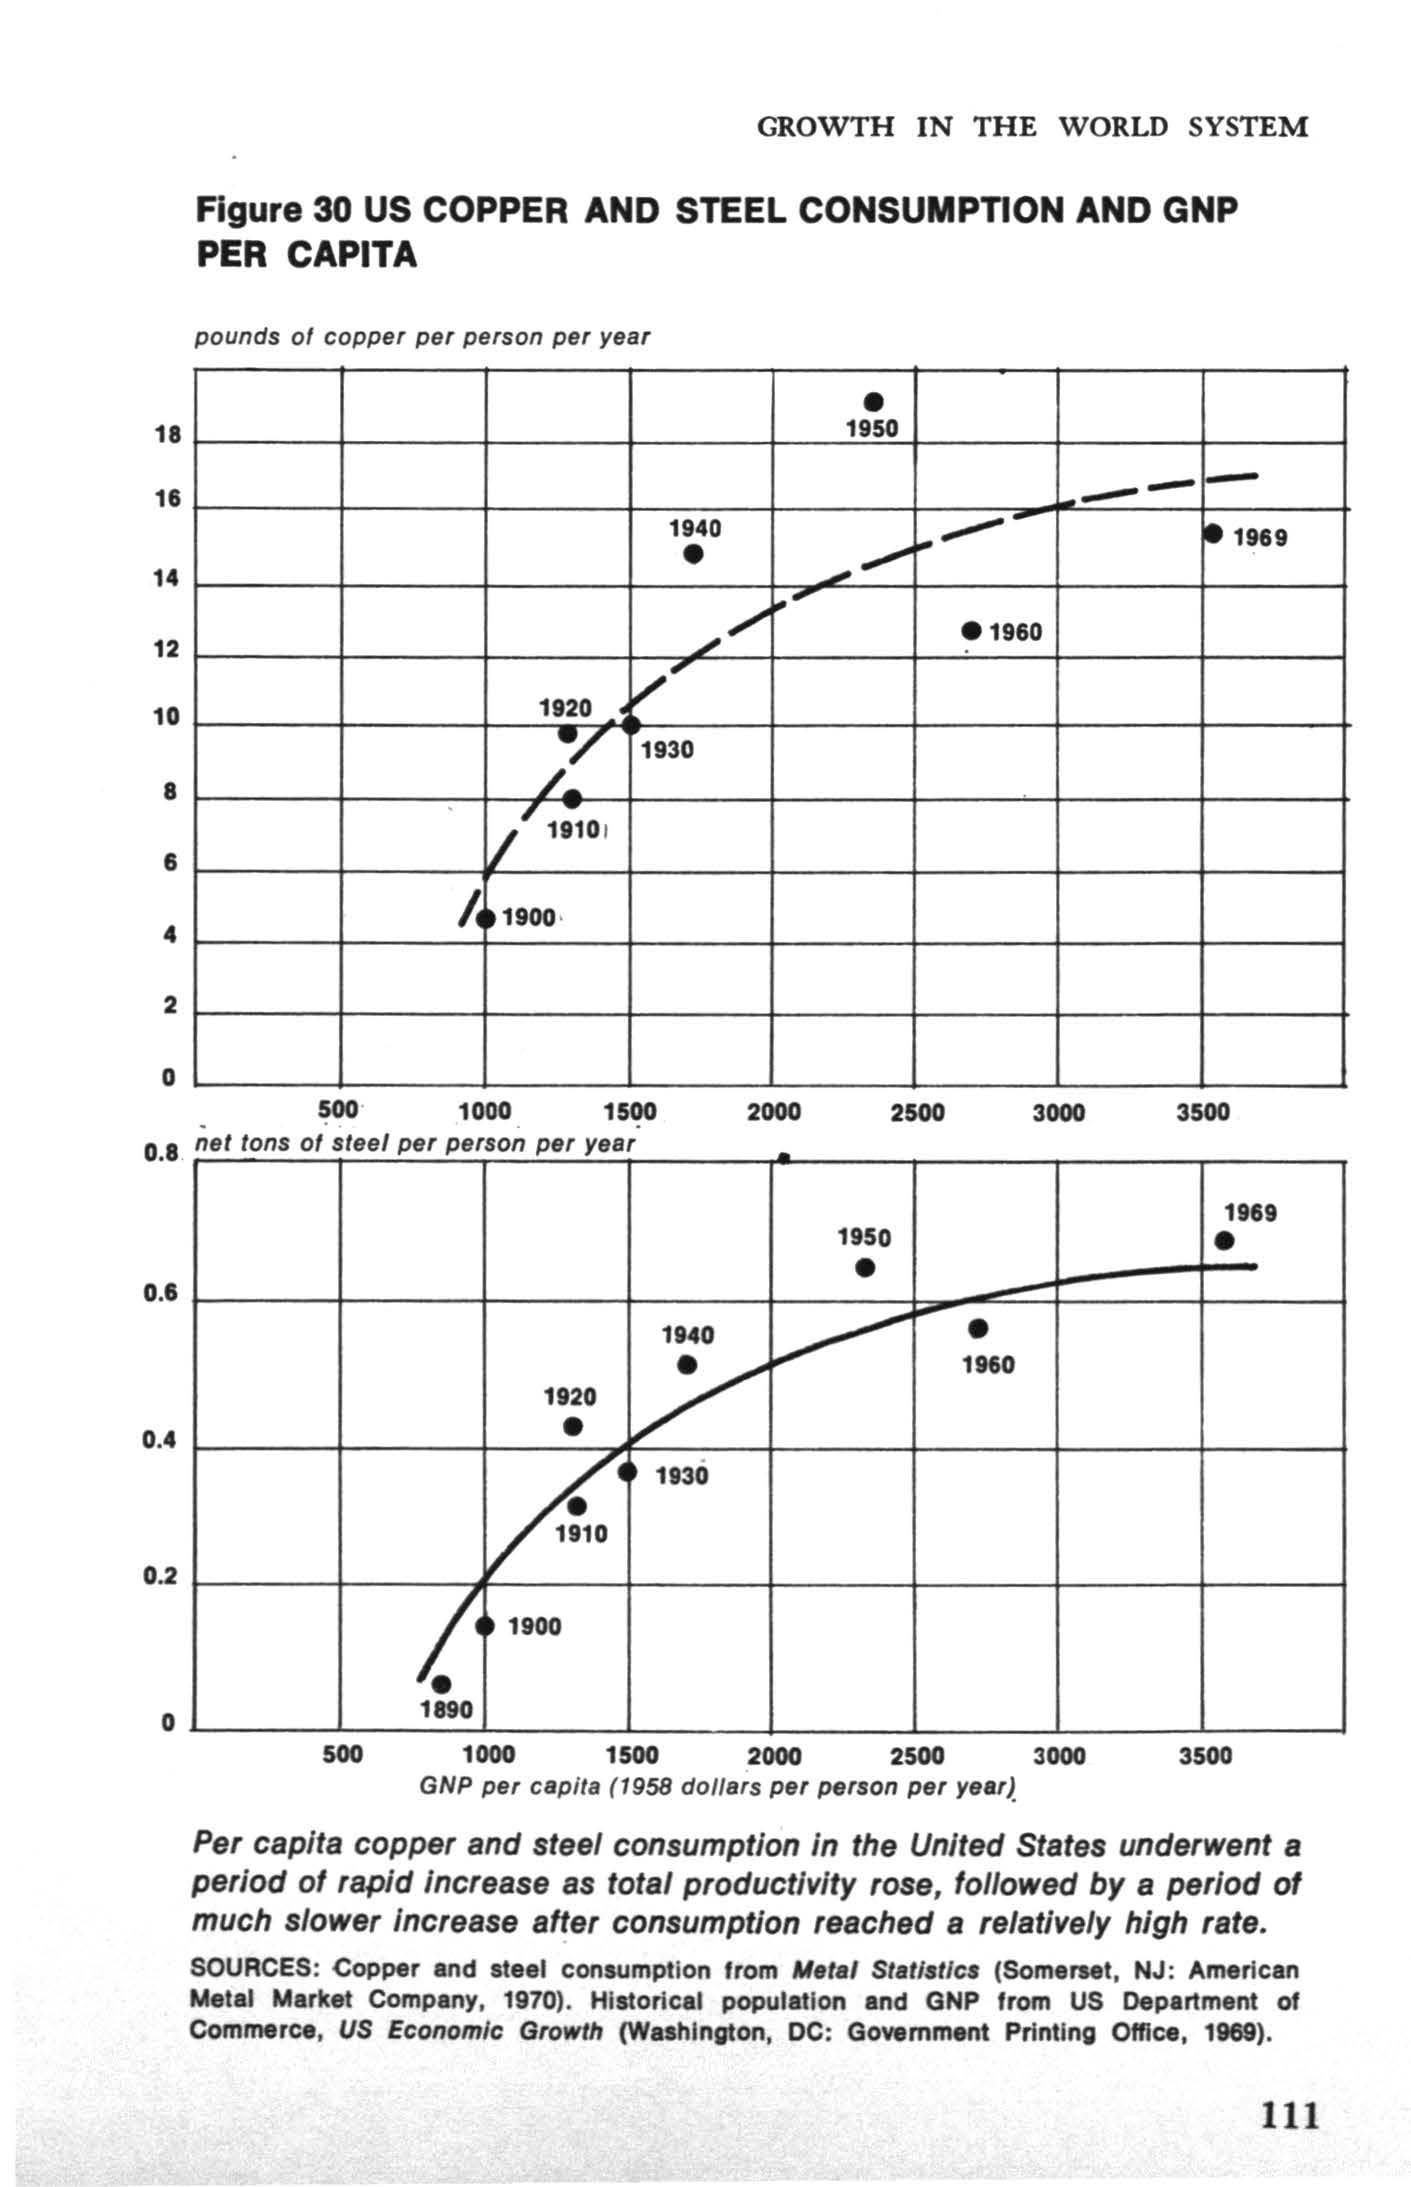 GROWTH N THE WORLD SYSTEM Figure 30 US COPPER AND STEEL CONSUMPTON AND GNP PER CAPTA 18 11 14 12 10 8 8 pounds ol copper per person per year 1920 v' 1930 /' 1a1o. 1950...,.,... --- 1940...- le 1989.